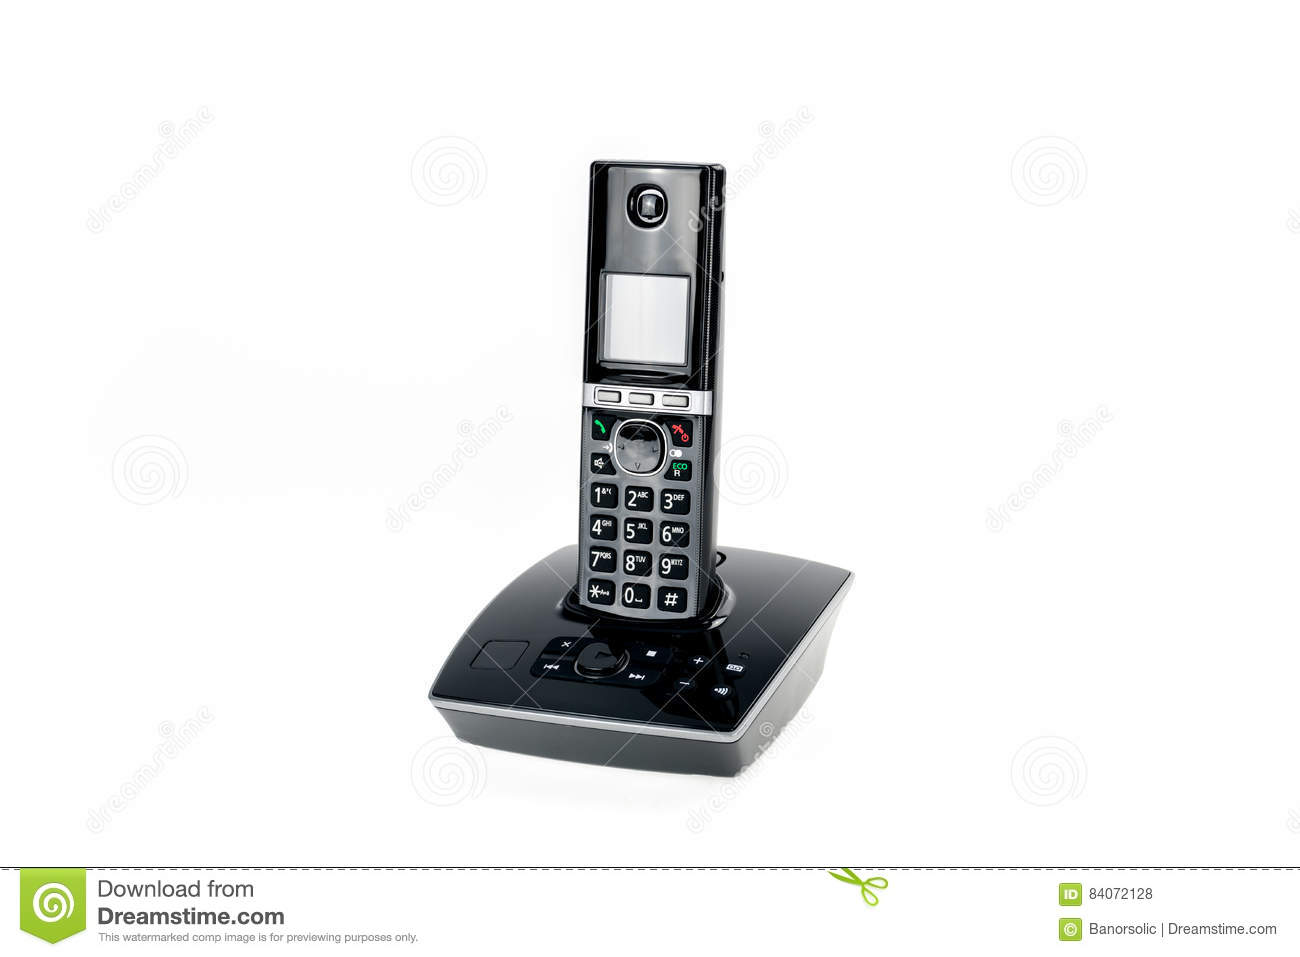 Modern cordless dect phone with answering machine isolated